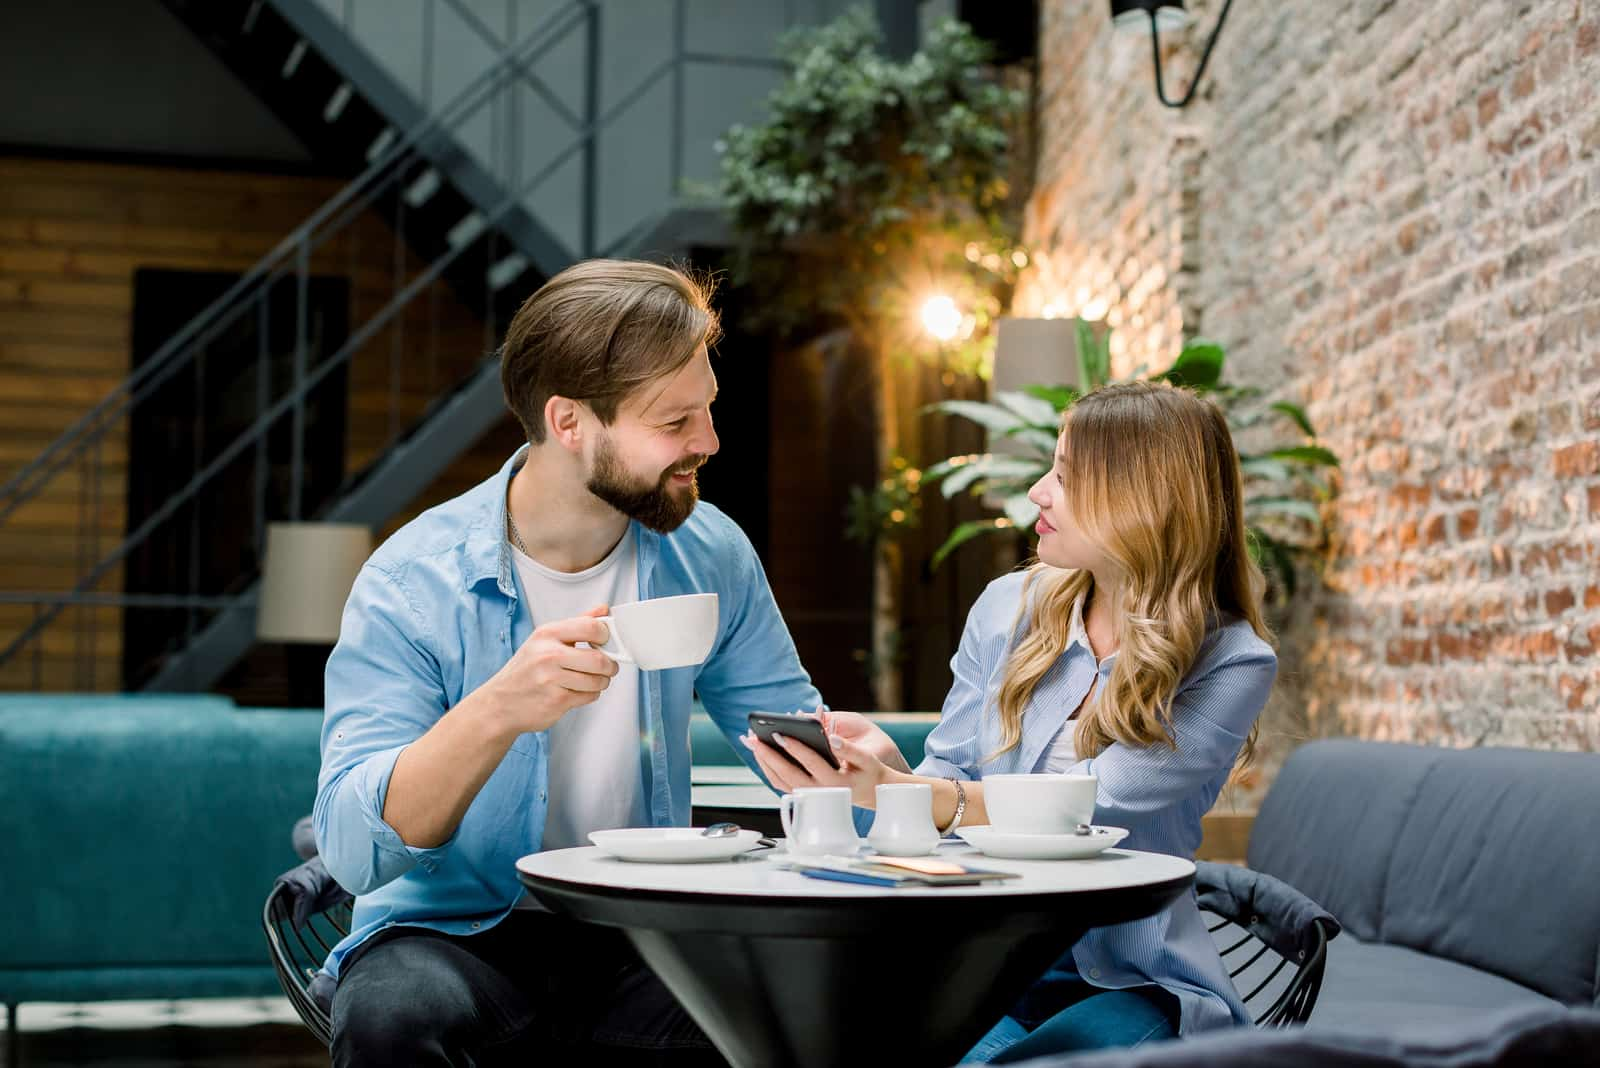 a smiling man and woman sitting at a table having coffee talking